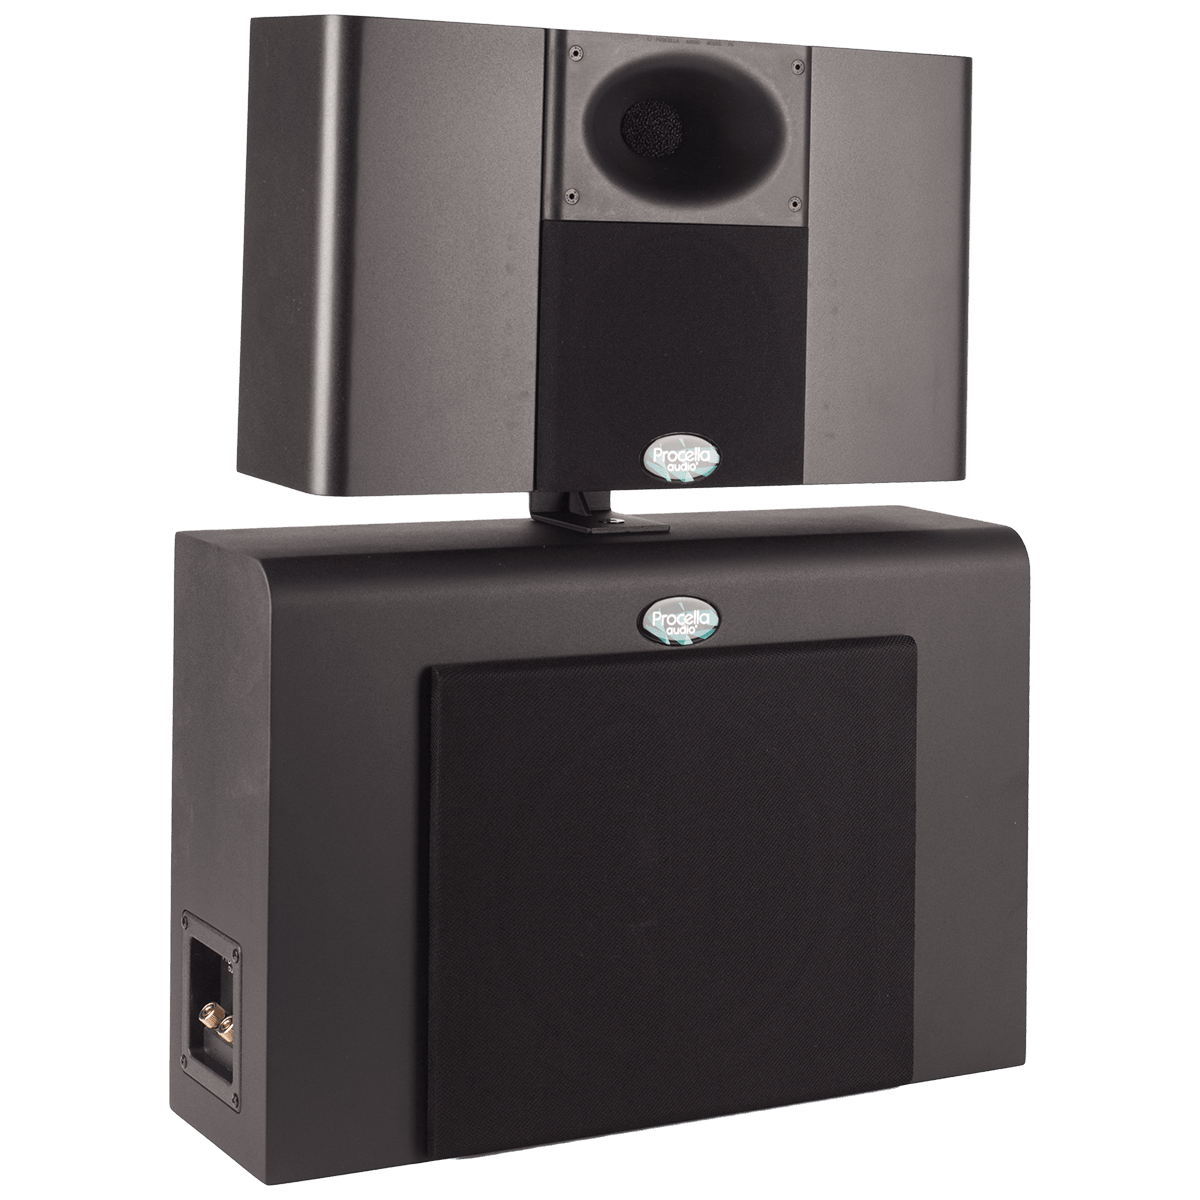 Procella P610 side view with cover 1200×1200